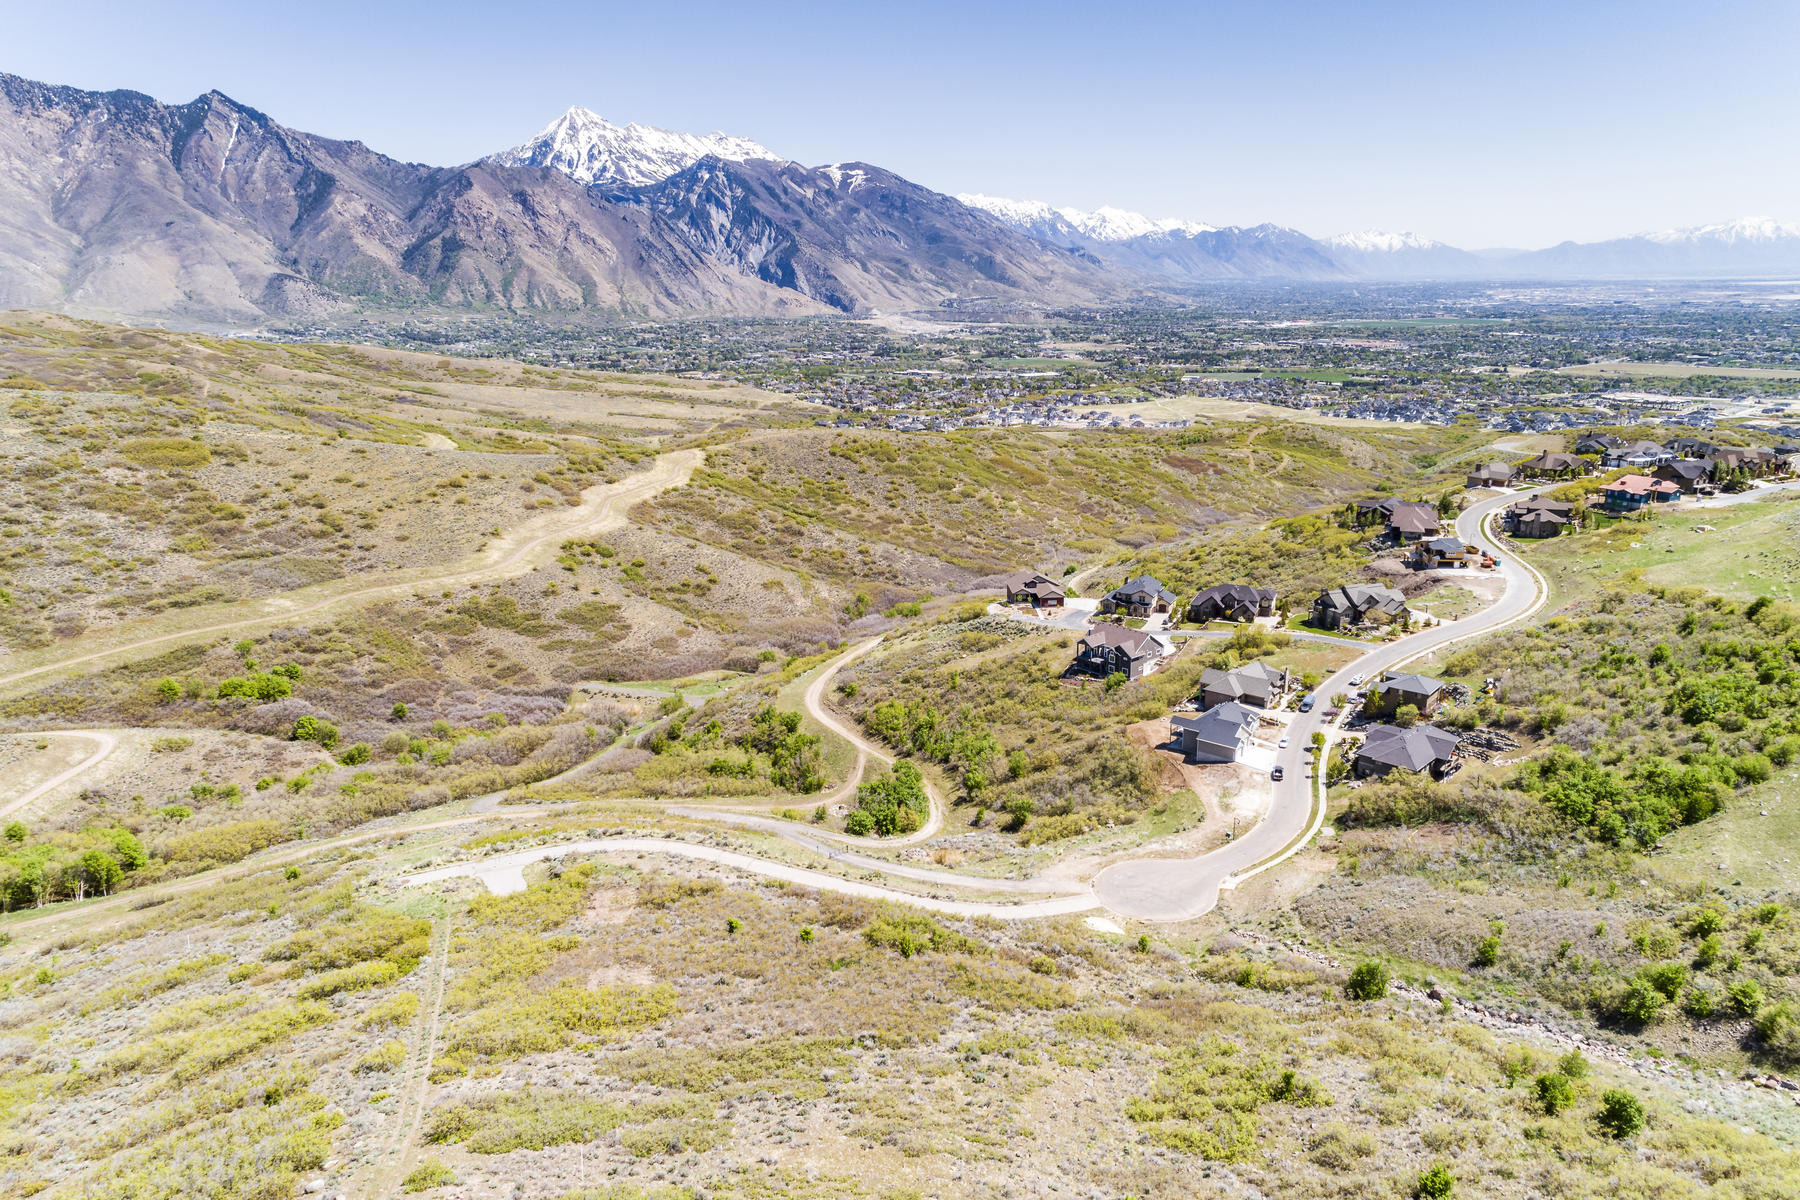 Land for Sale at Once In A While An Opportunity Comes Your Way That You Cannot Pass 15338 S Winged Trace Crt Lot #516 Draper, Utah 84020 United States